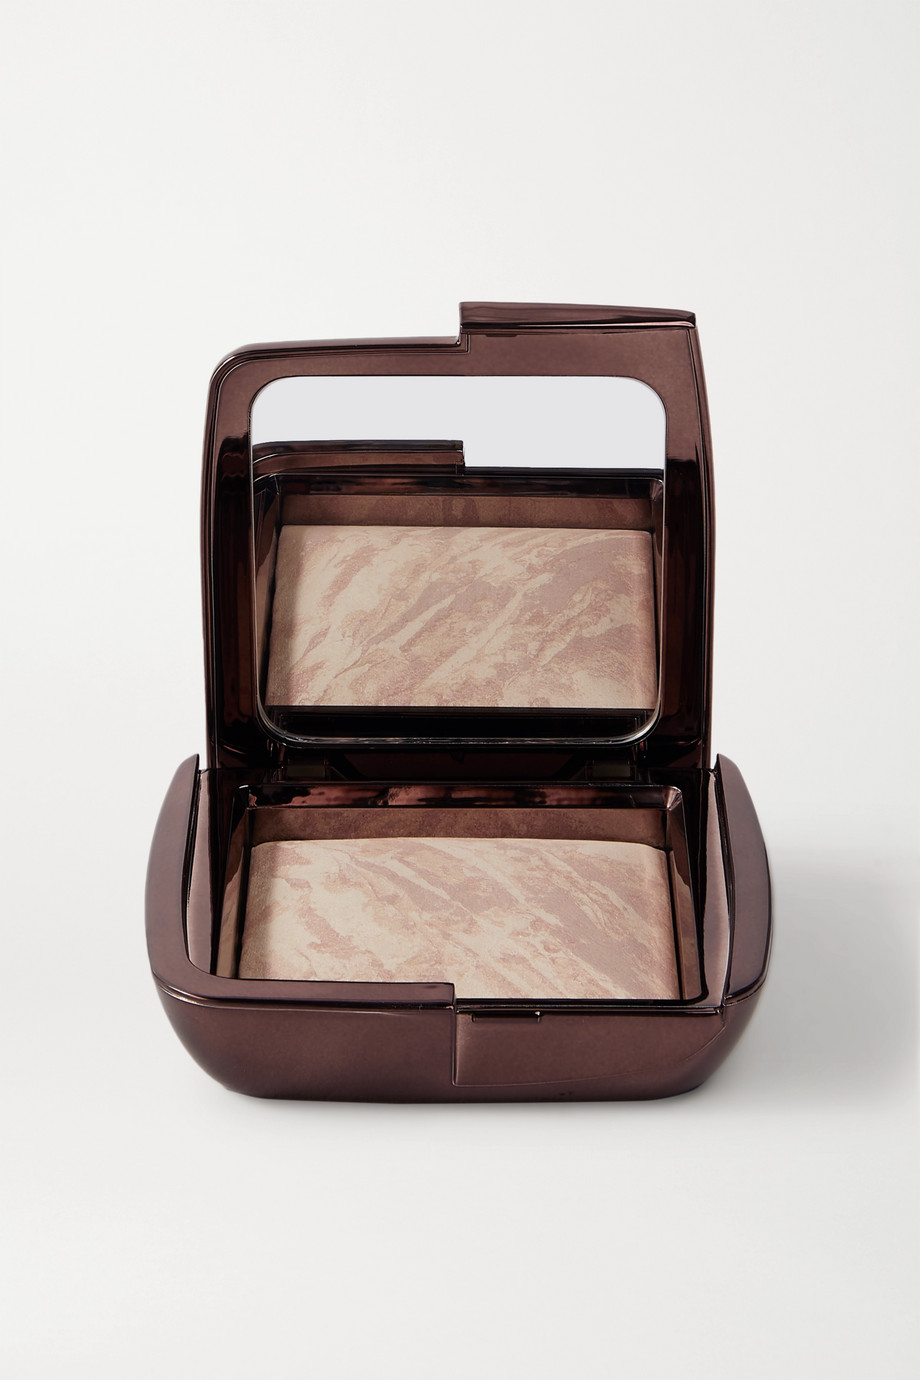 HOURGLASS Ambient Lighting Infinity Powder, 9.5g